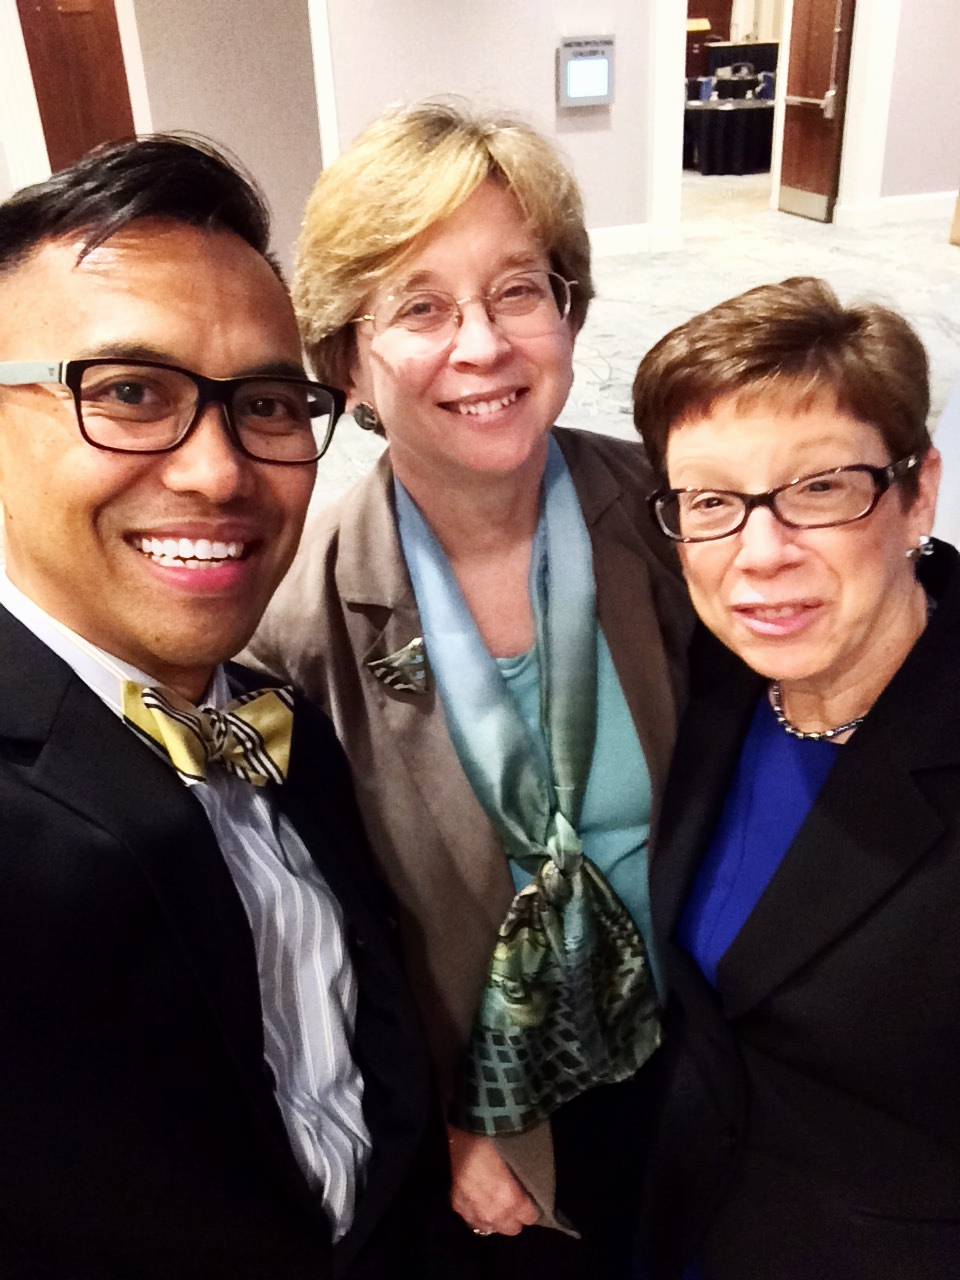 Sarah M. Pritchard, Dean of Libraries and the Charles Deering McCormick University Librarian; and Mary Case, ARL President, University Librarian and Dean of Libraries, University of Illinois, Chicago